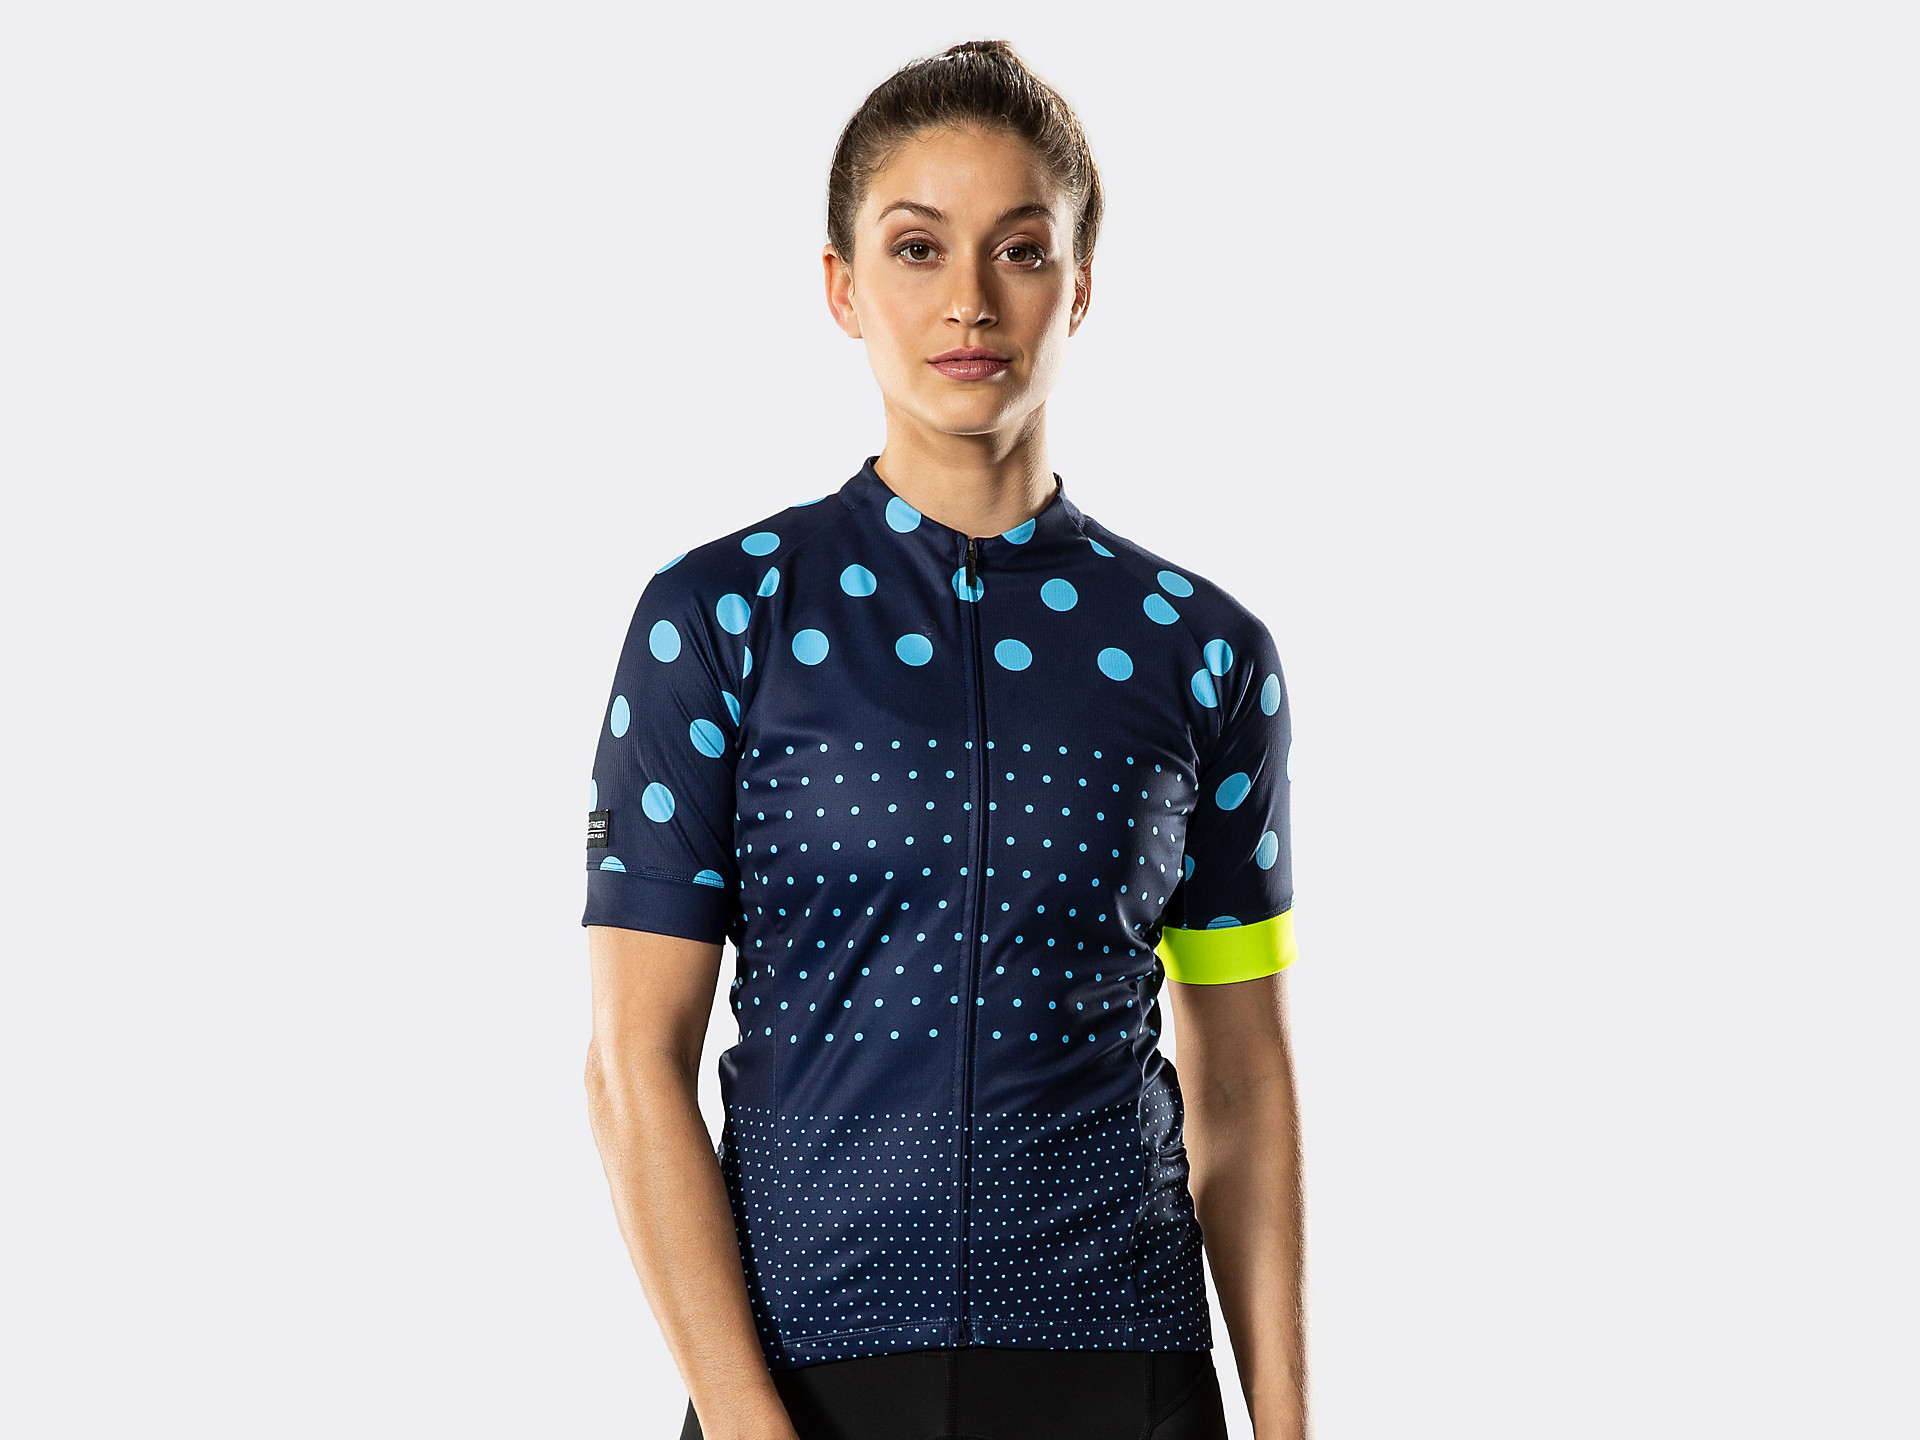 Bontrager Anara LTD Women s Cycling Jersey. Overview  Features  Tech specs   Sizing   fit  Reviews  FAQs  Top. Prev Next cdd6c1802